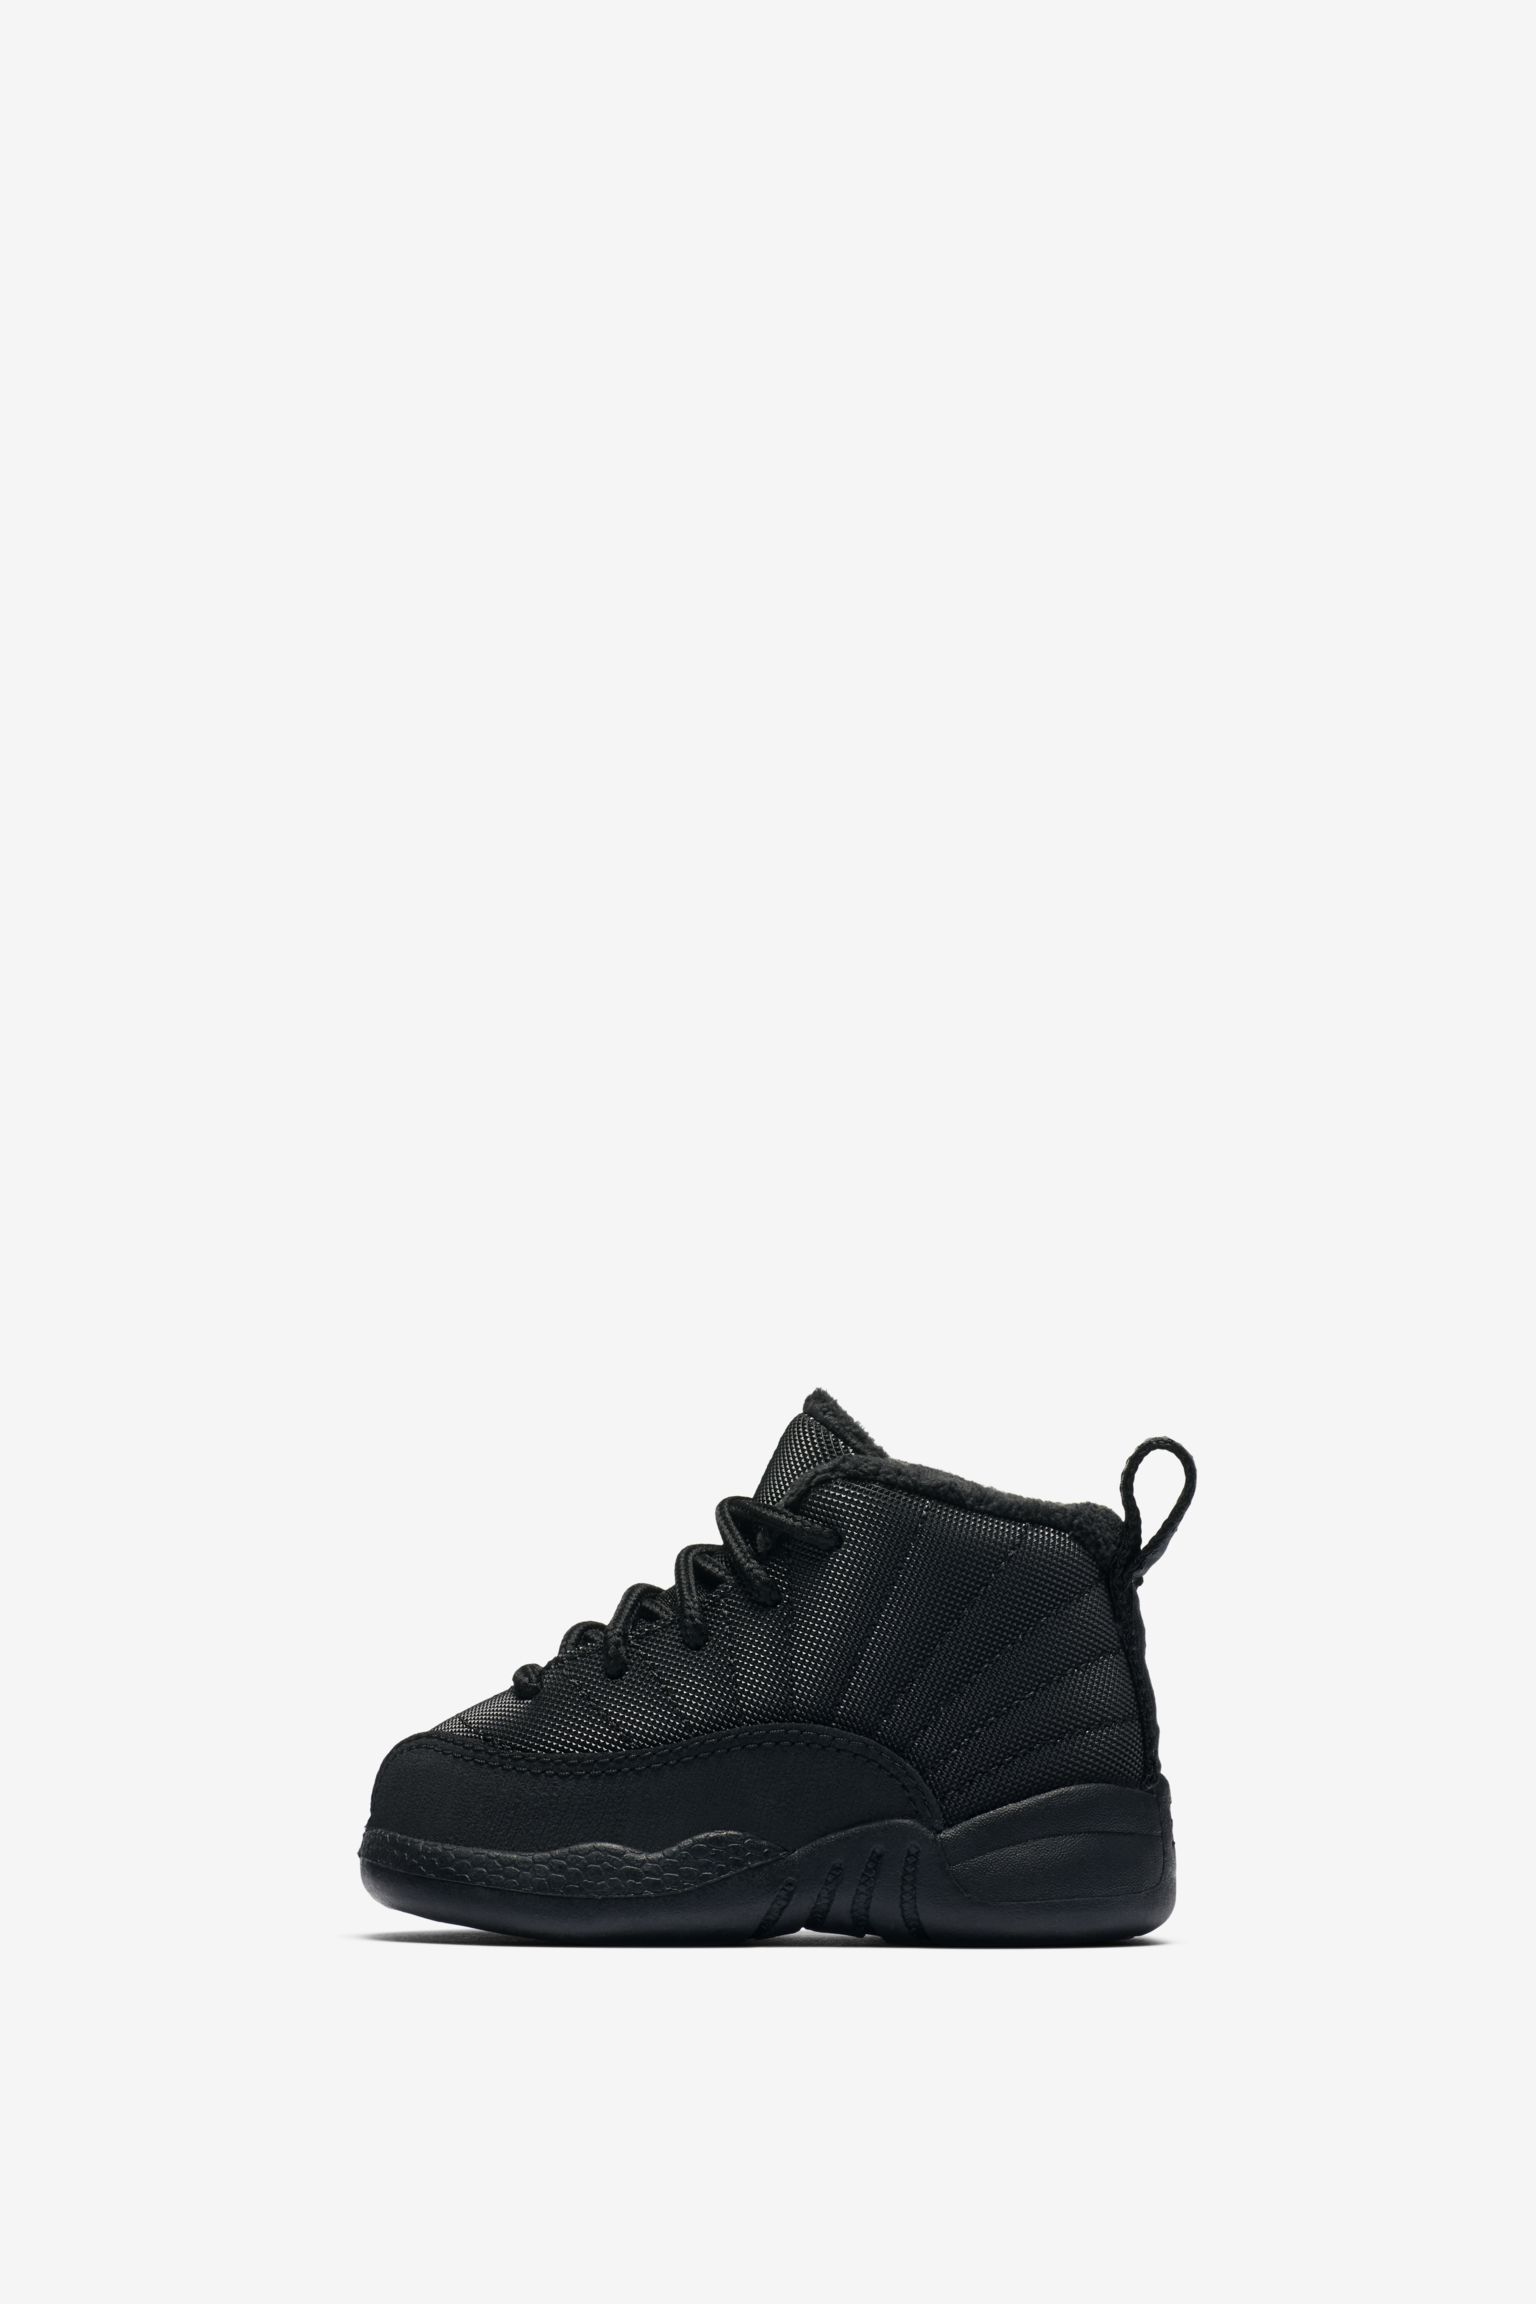 Air Jordan 12 Retro Winter  Black   Anthracite  Release Date. Nike⁠+ ... b5b4be1be7a